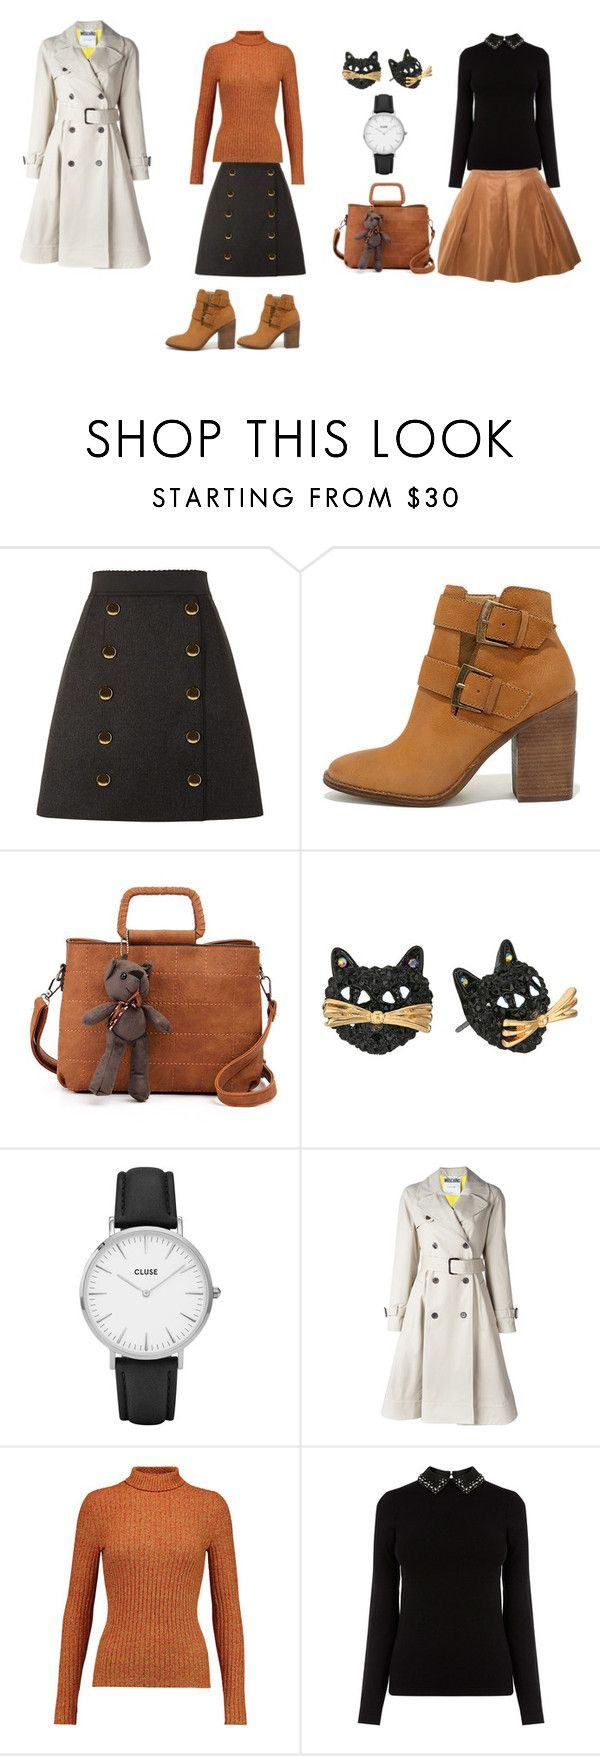 """Women set"" by tada-selo123 ❤ liked on Polyvore featuring Dolce&Gabbana, Steve Madden, Betsey Johnson, CLUSE, Moschino, Just Cavalli and Miu Miu"